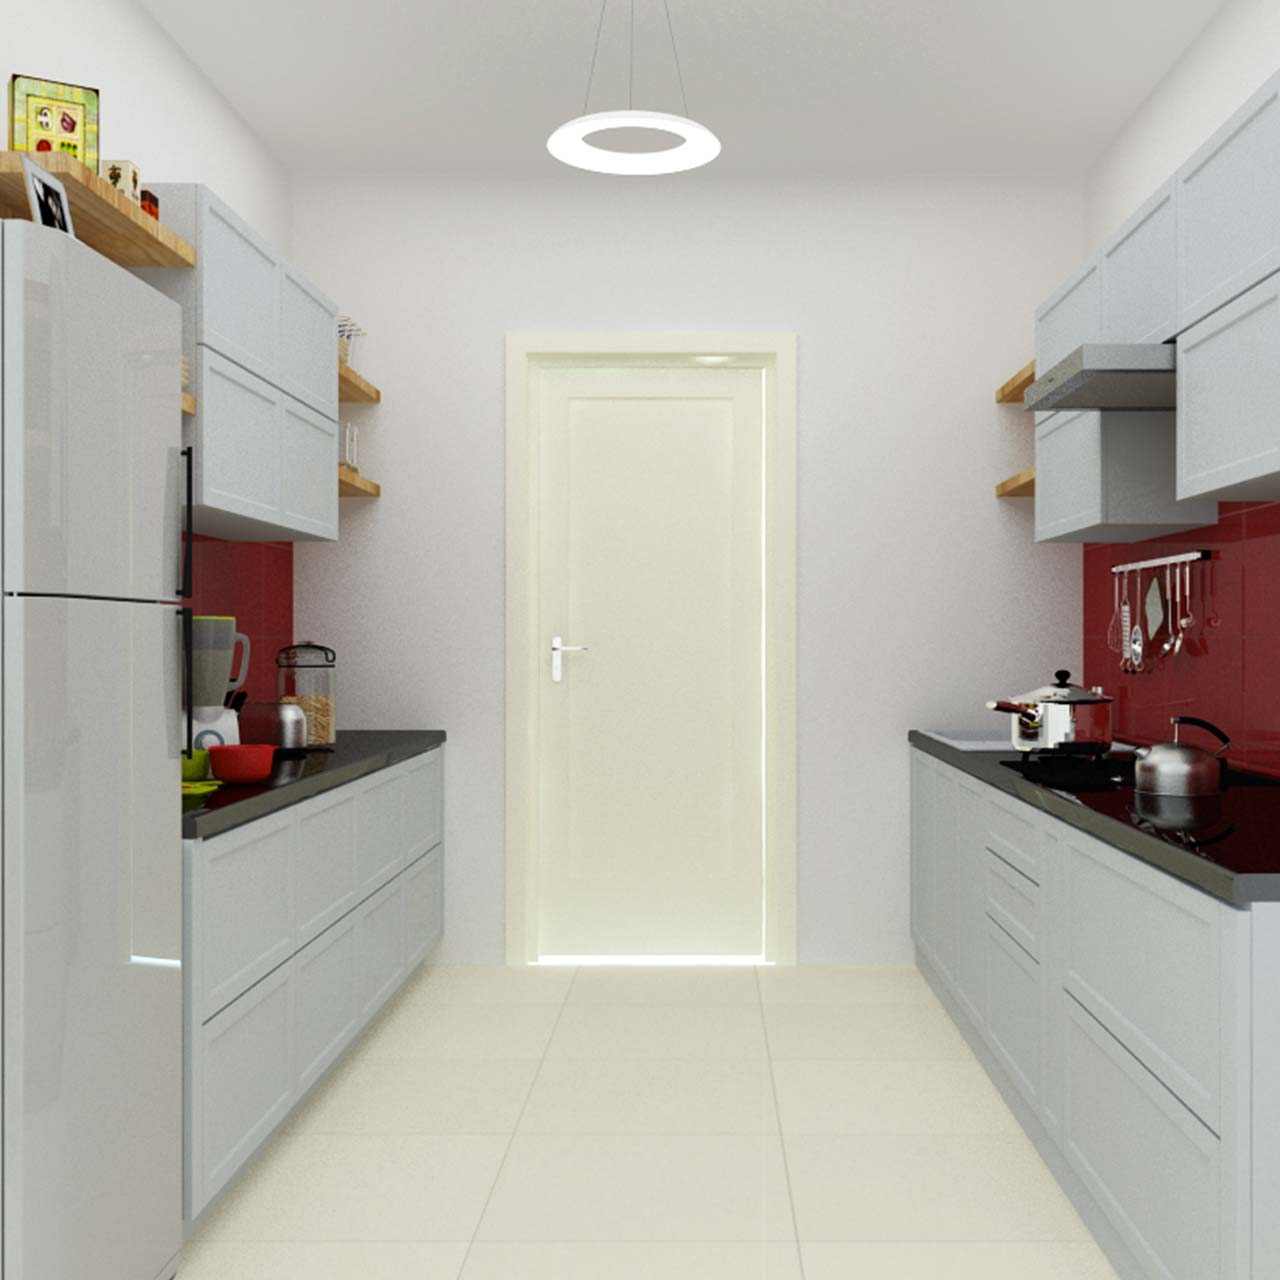 kitchen layouts with parallel kitchen and grey cabinets and black countertop which is a perfect example of a minimalistic kitchen